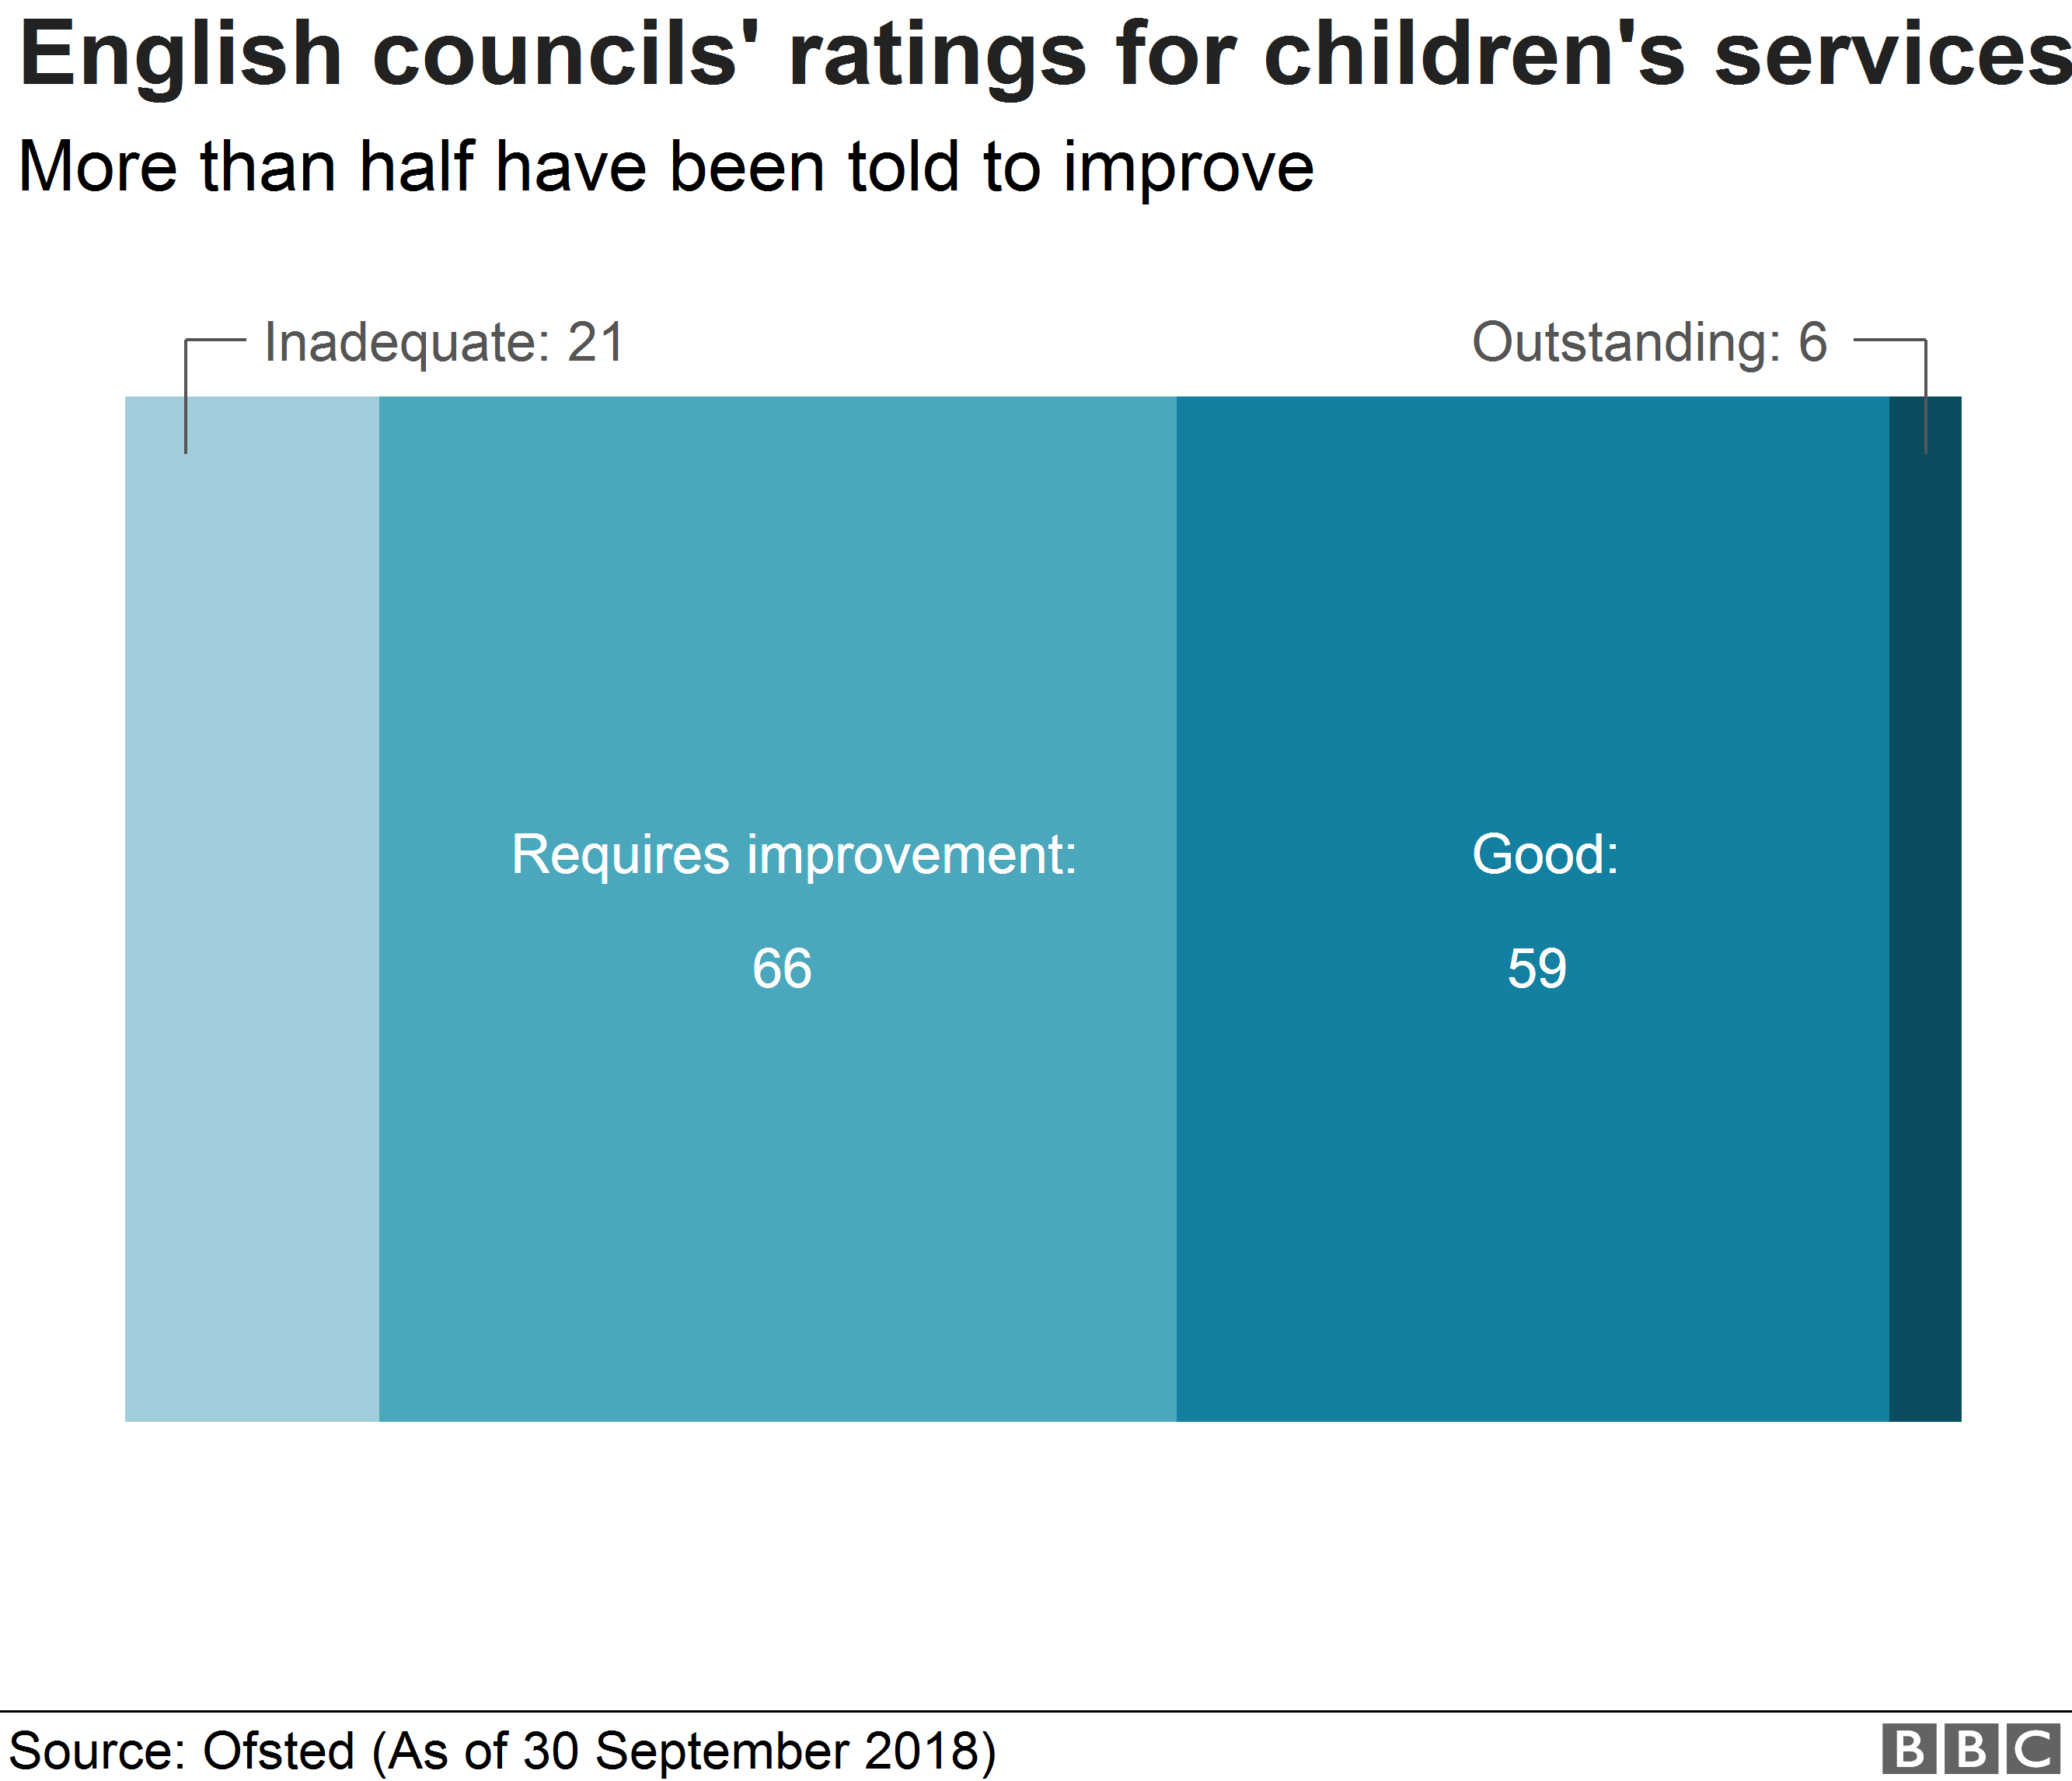 Chart showing how English councils are rated for children's services